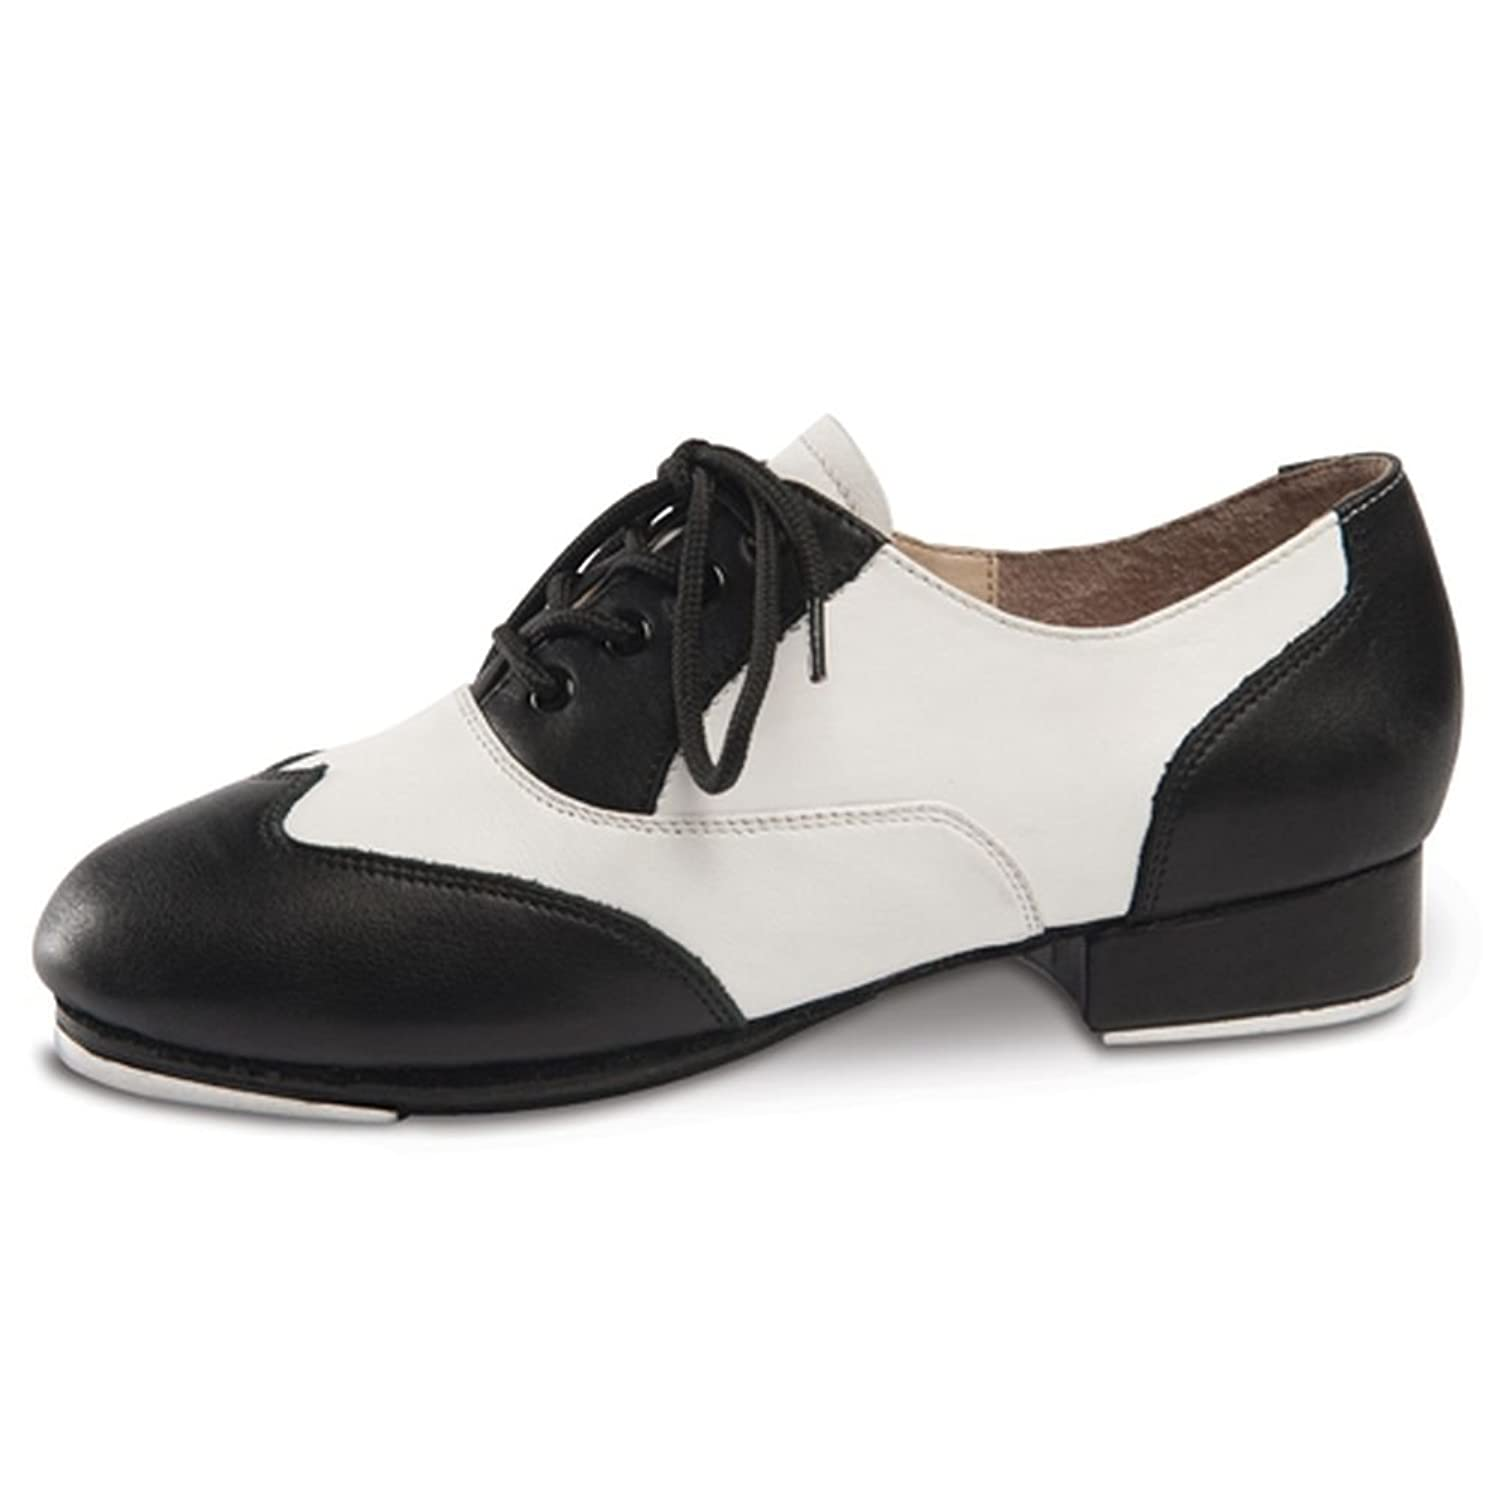 1940s Style Shoes, 40s Shoes Danshuz Womens Black White Saddle Style Tap Dance Shoes Size 3-11 $119.95 AT vintagedancer.com